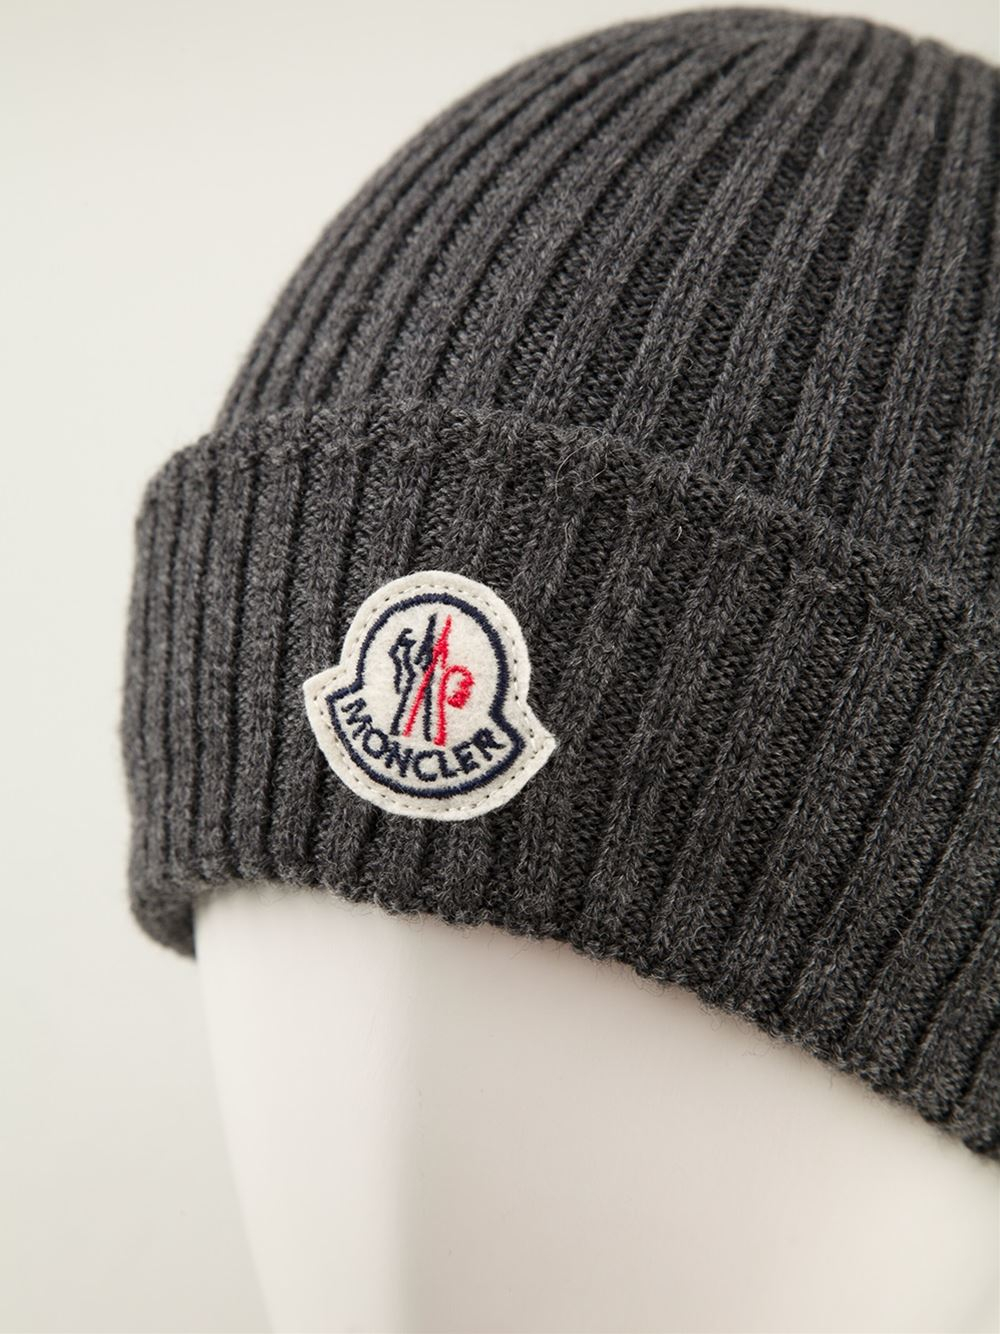 mens moncler bucket hat - SchoolinBeeld.com 233cf351c8f